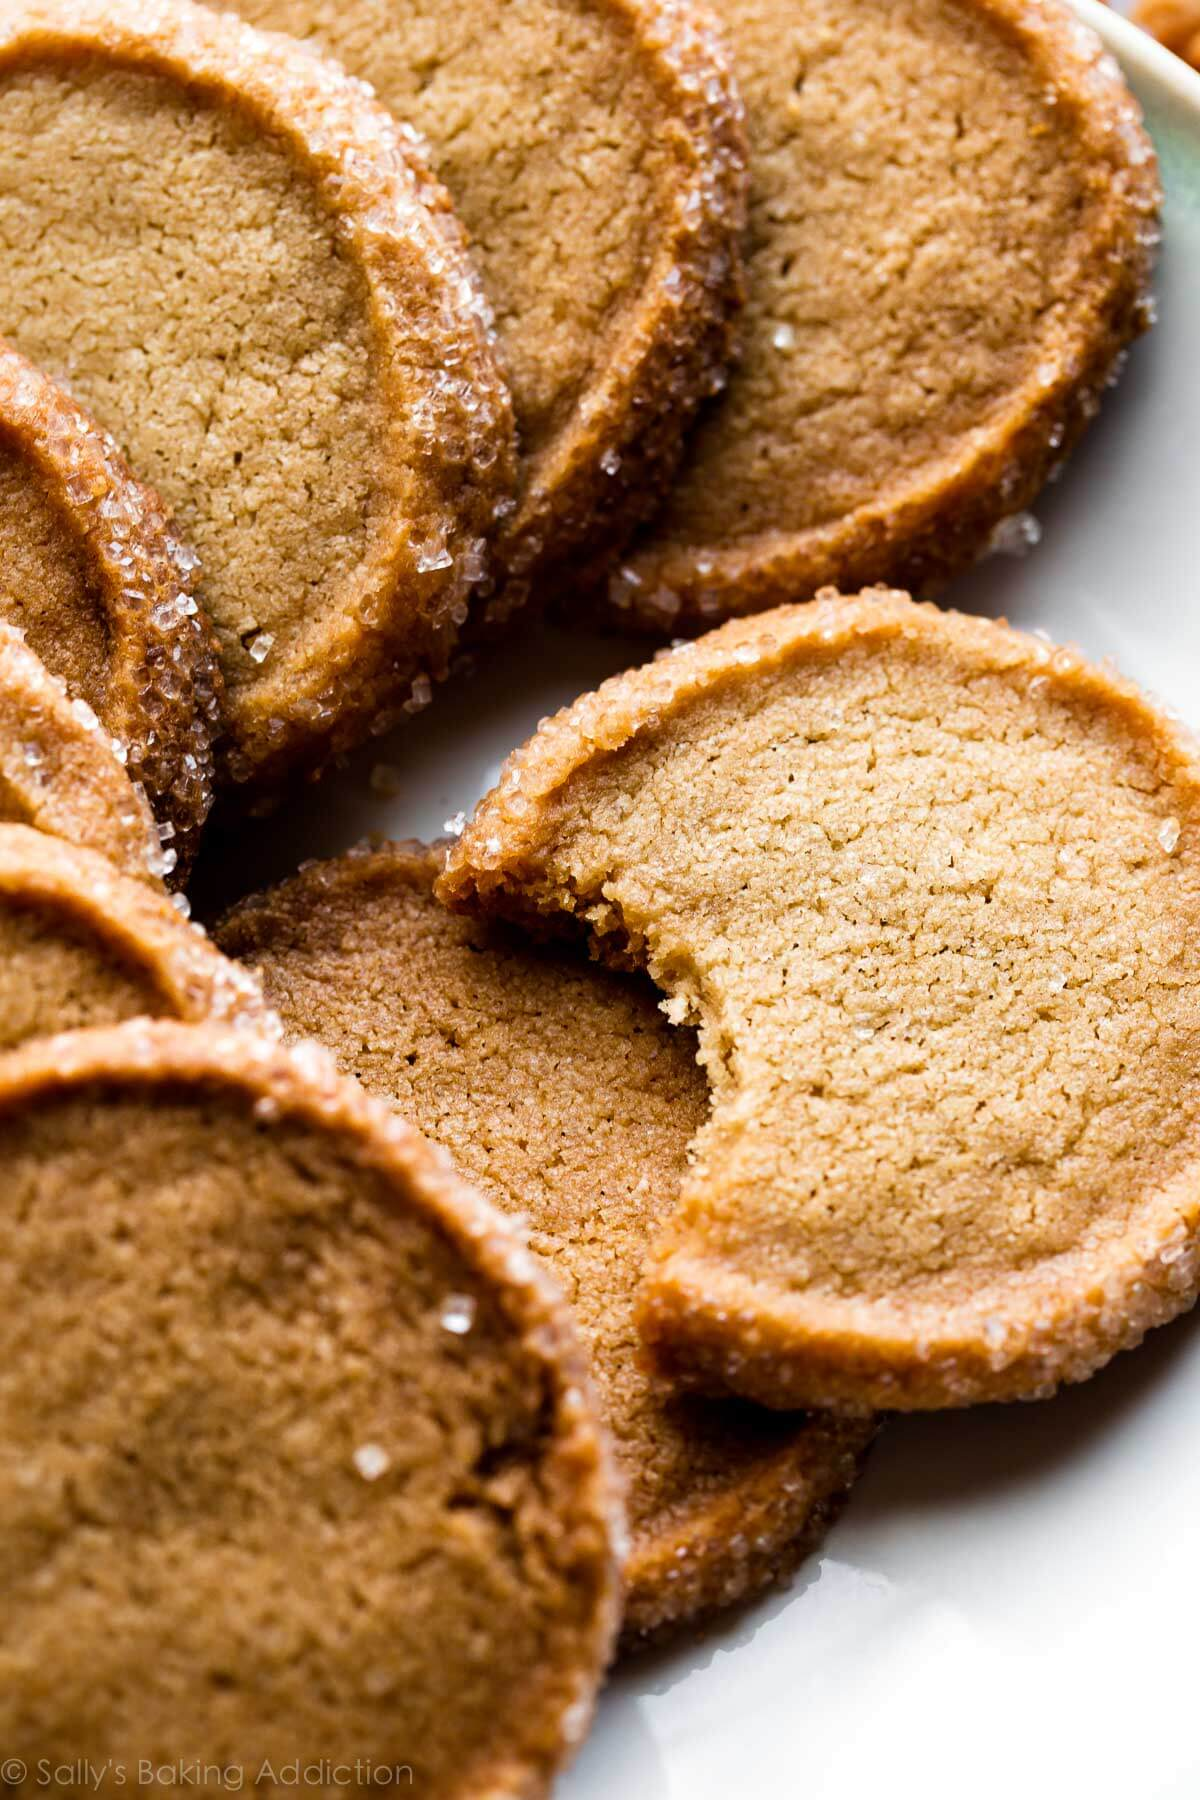 Brown Sugar Shortbread - Sallys Baking Addiction